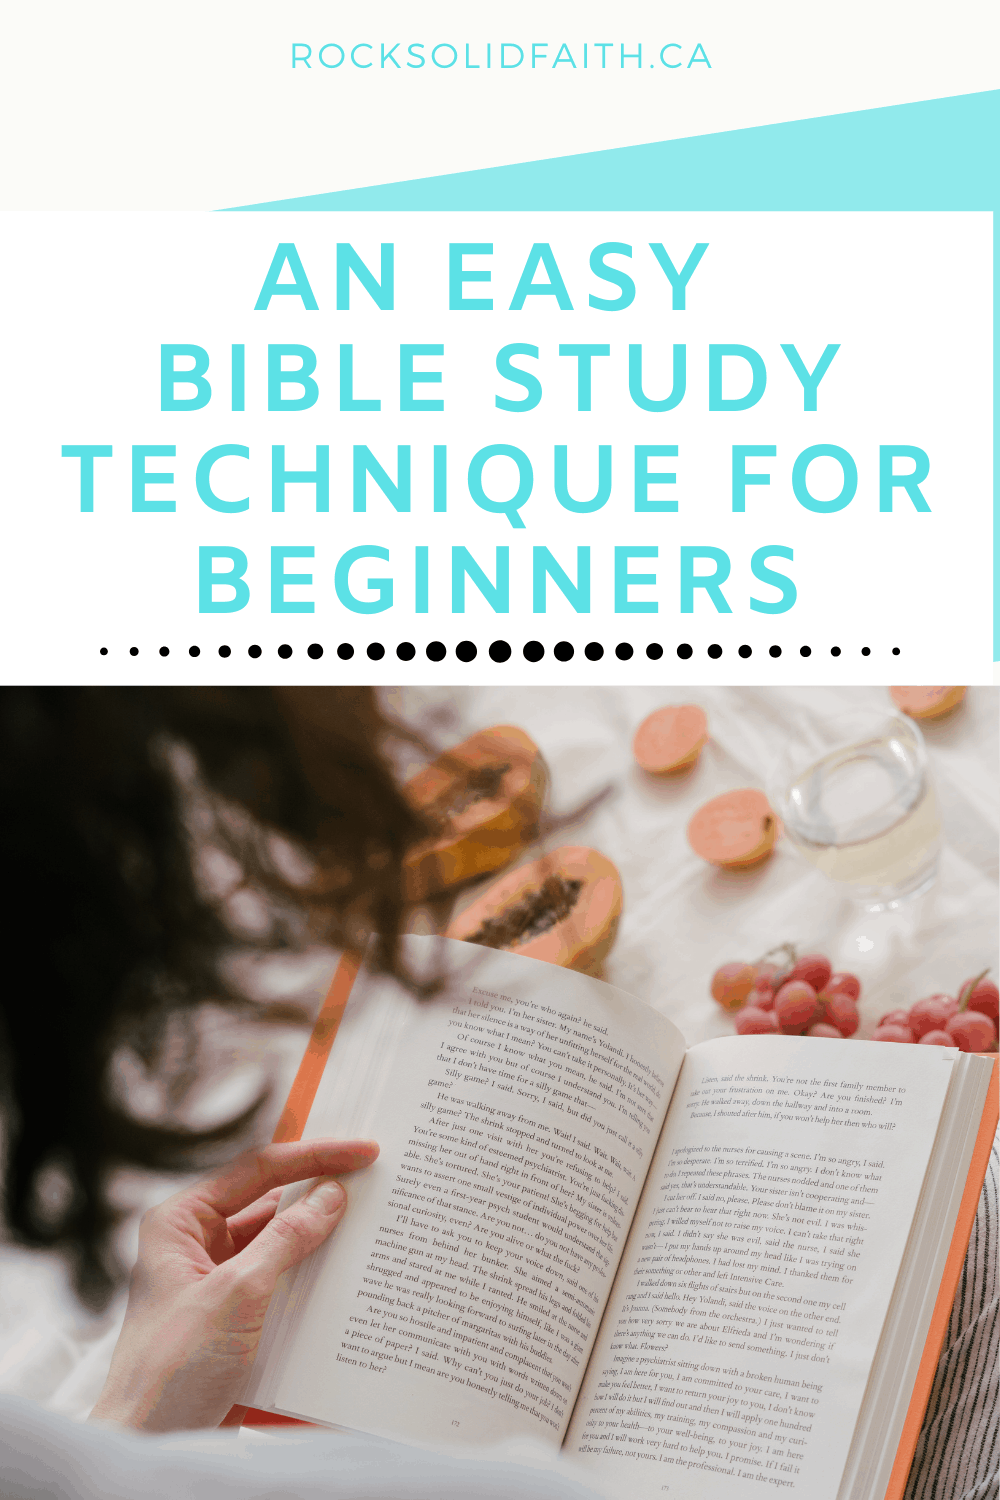 methods for studying the Bible